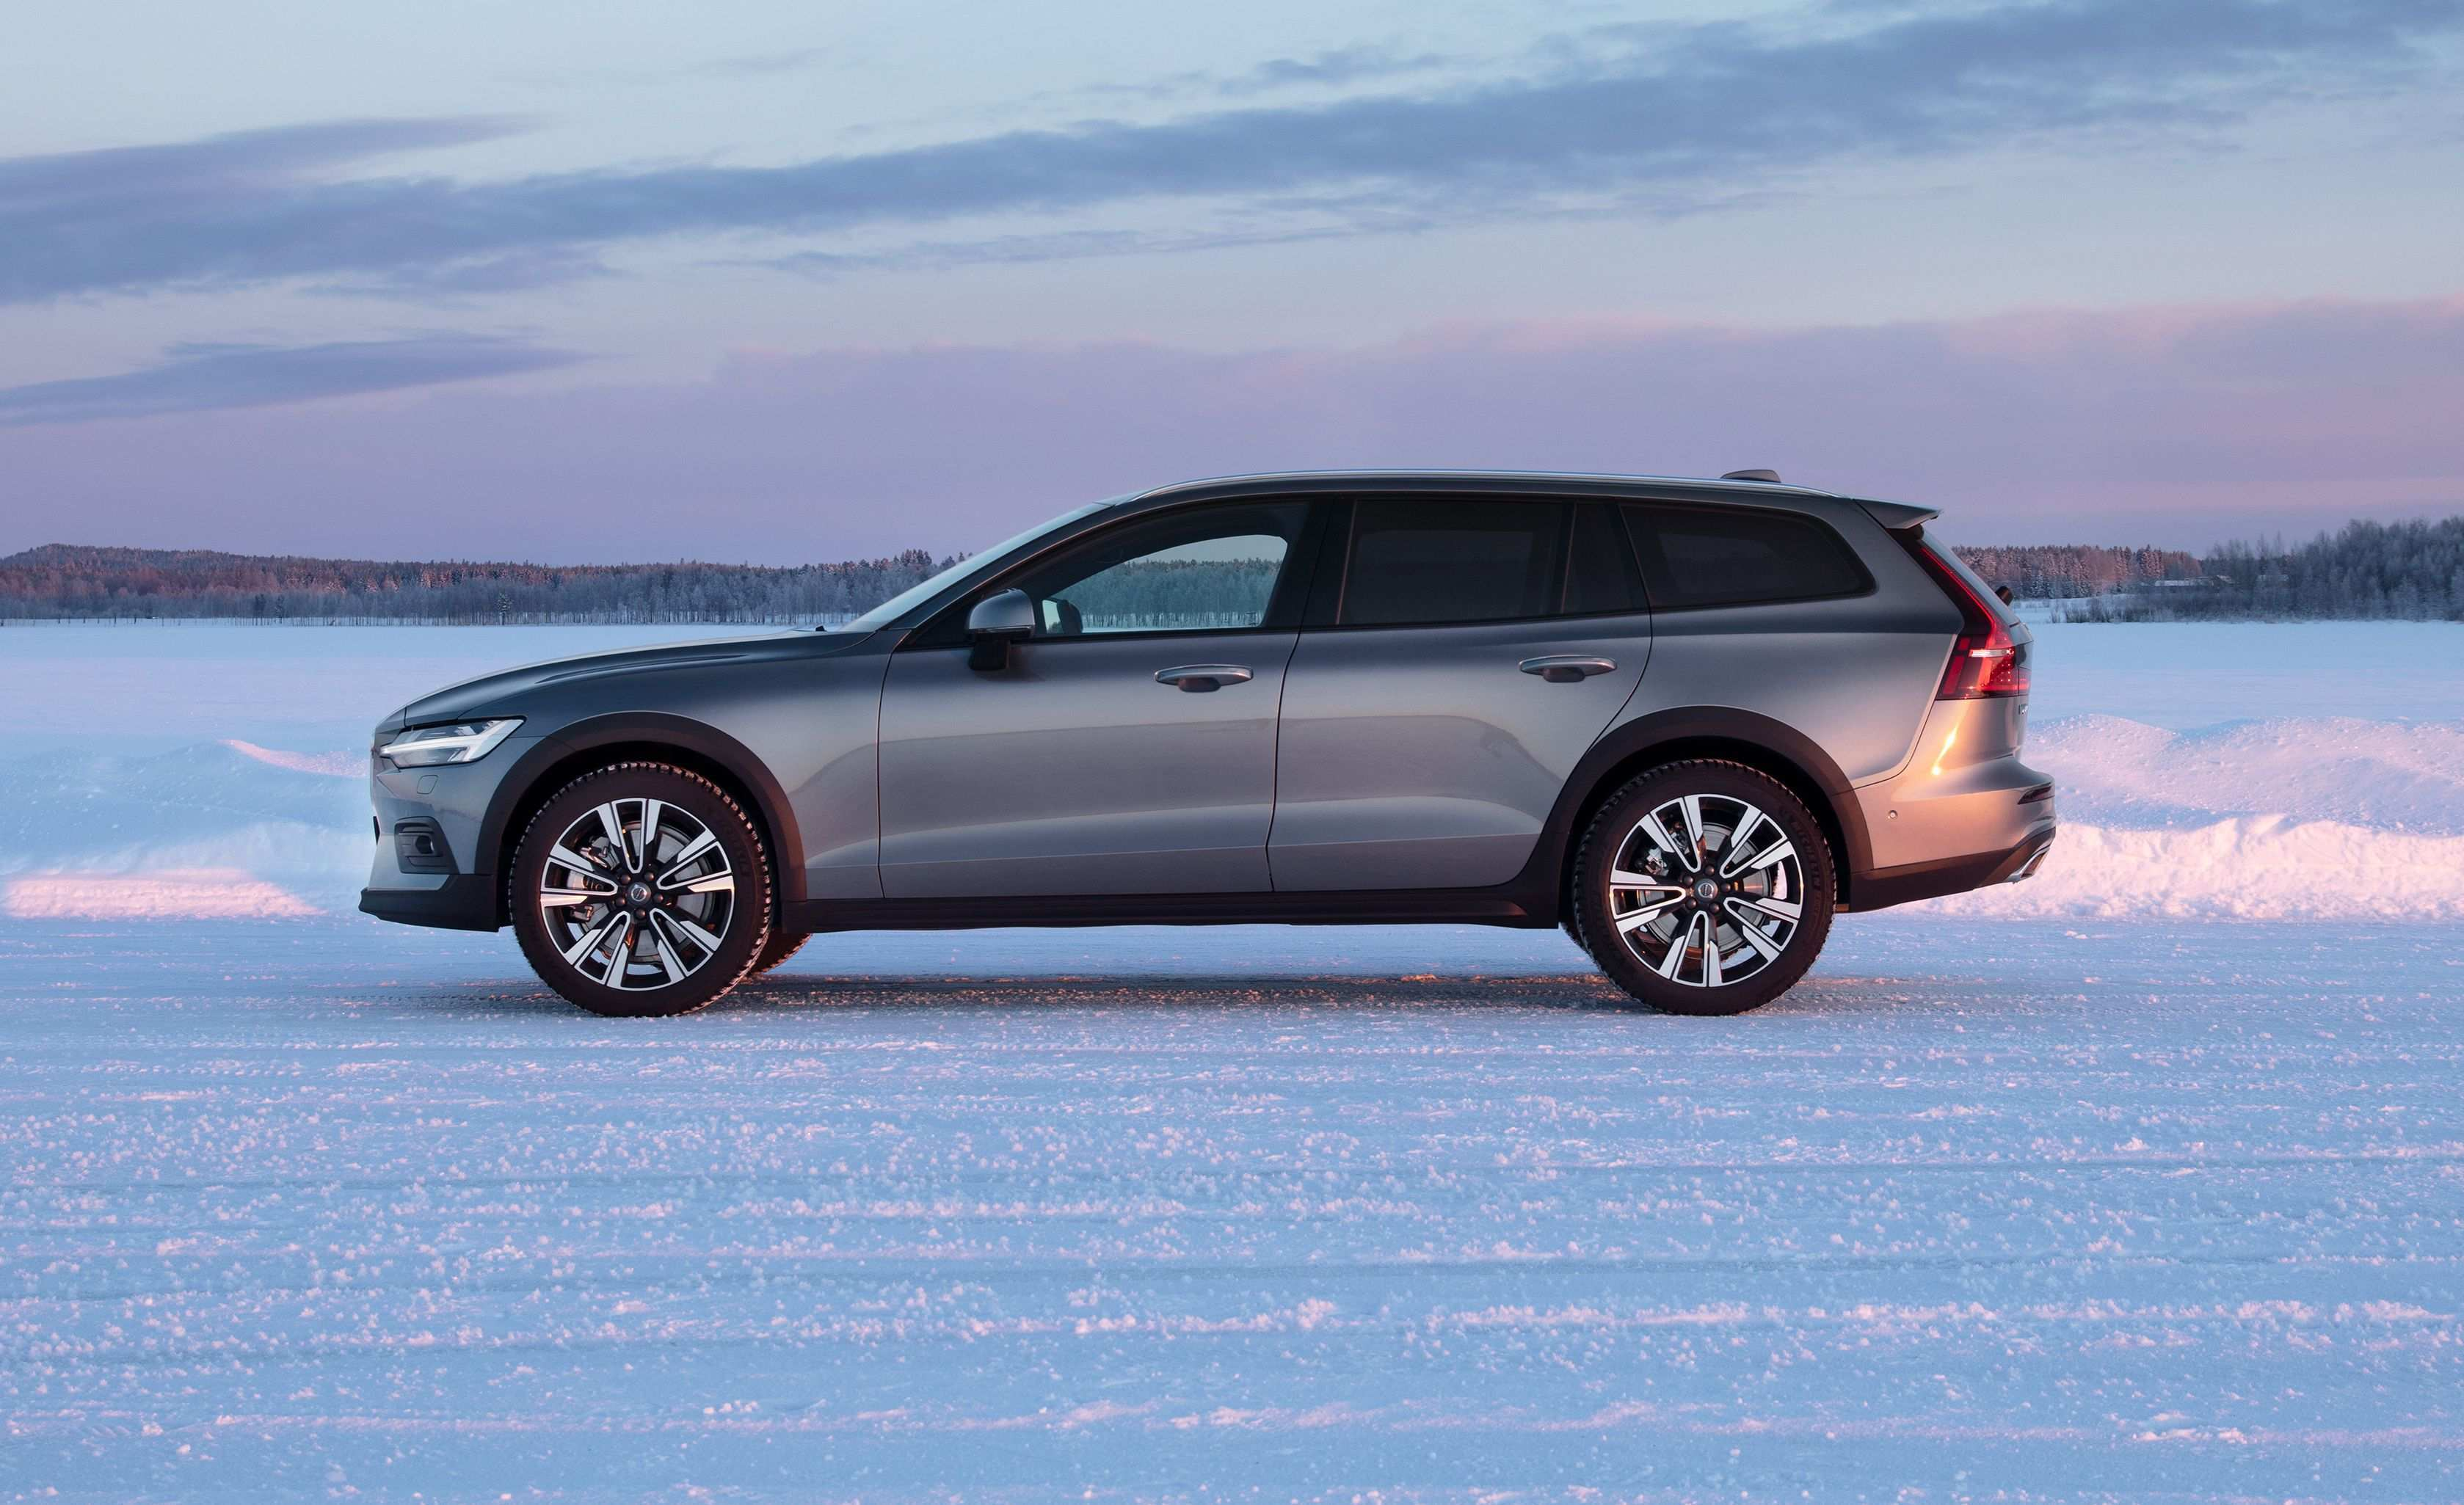 87 Great 2020 Volvo Wagon Price for 2020 Volvo Wagon